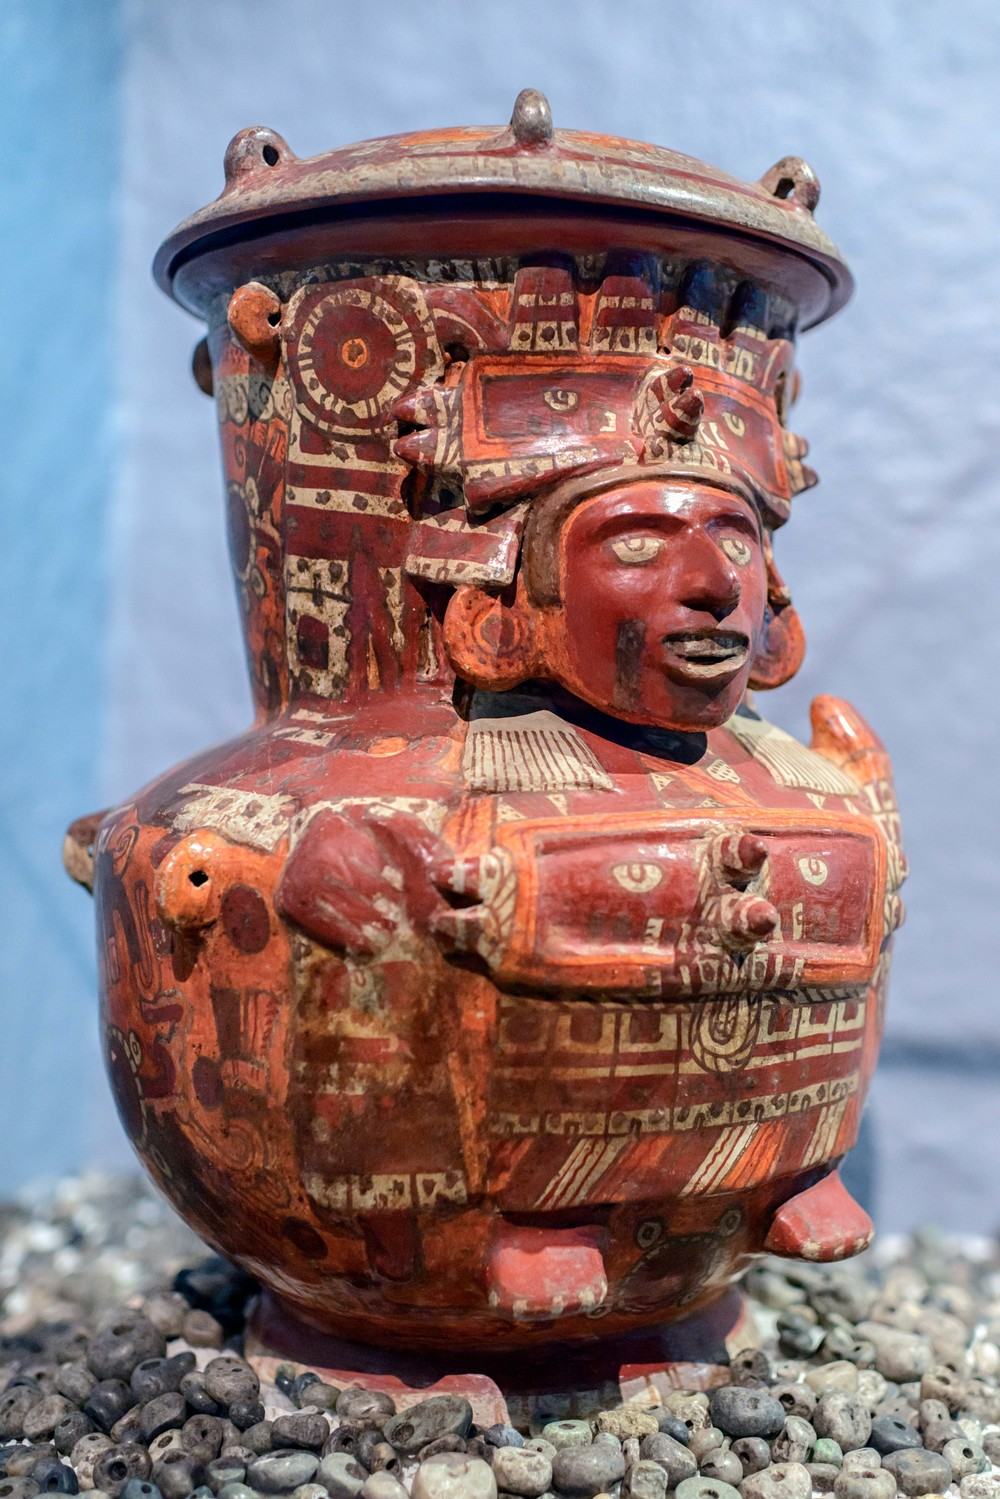 Chicomecoatl. This ceramic vase, decorated in a polychrome Cholula style, presents an image of Chicomecoatl: its cover shows Tlaloc, god of rain, pouring water. Templo Mayor Museum, Mexico City.